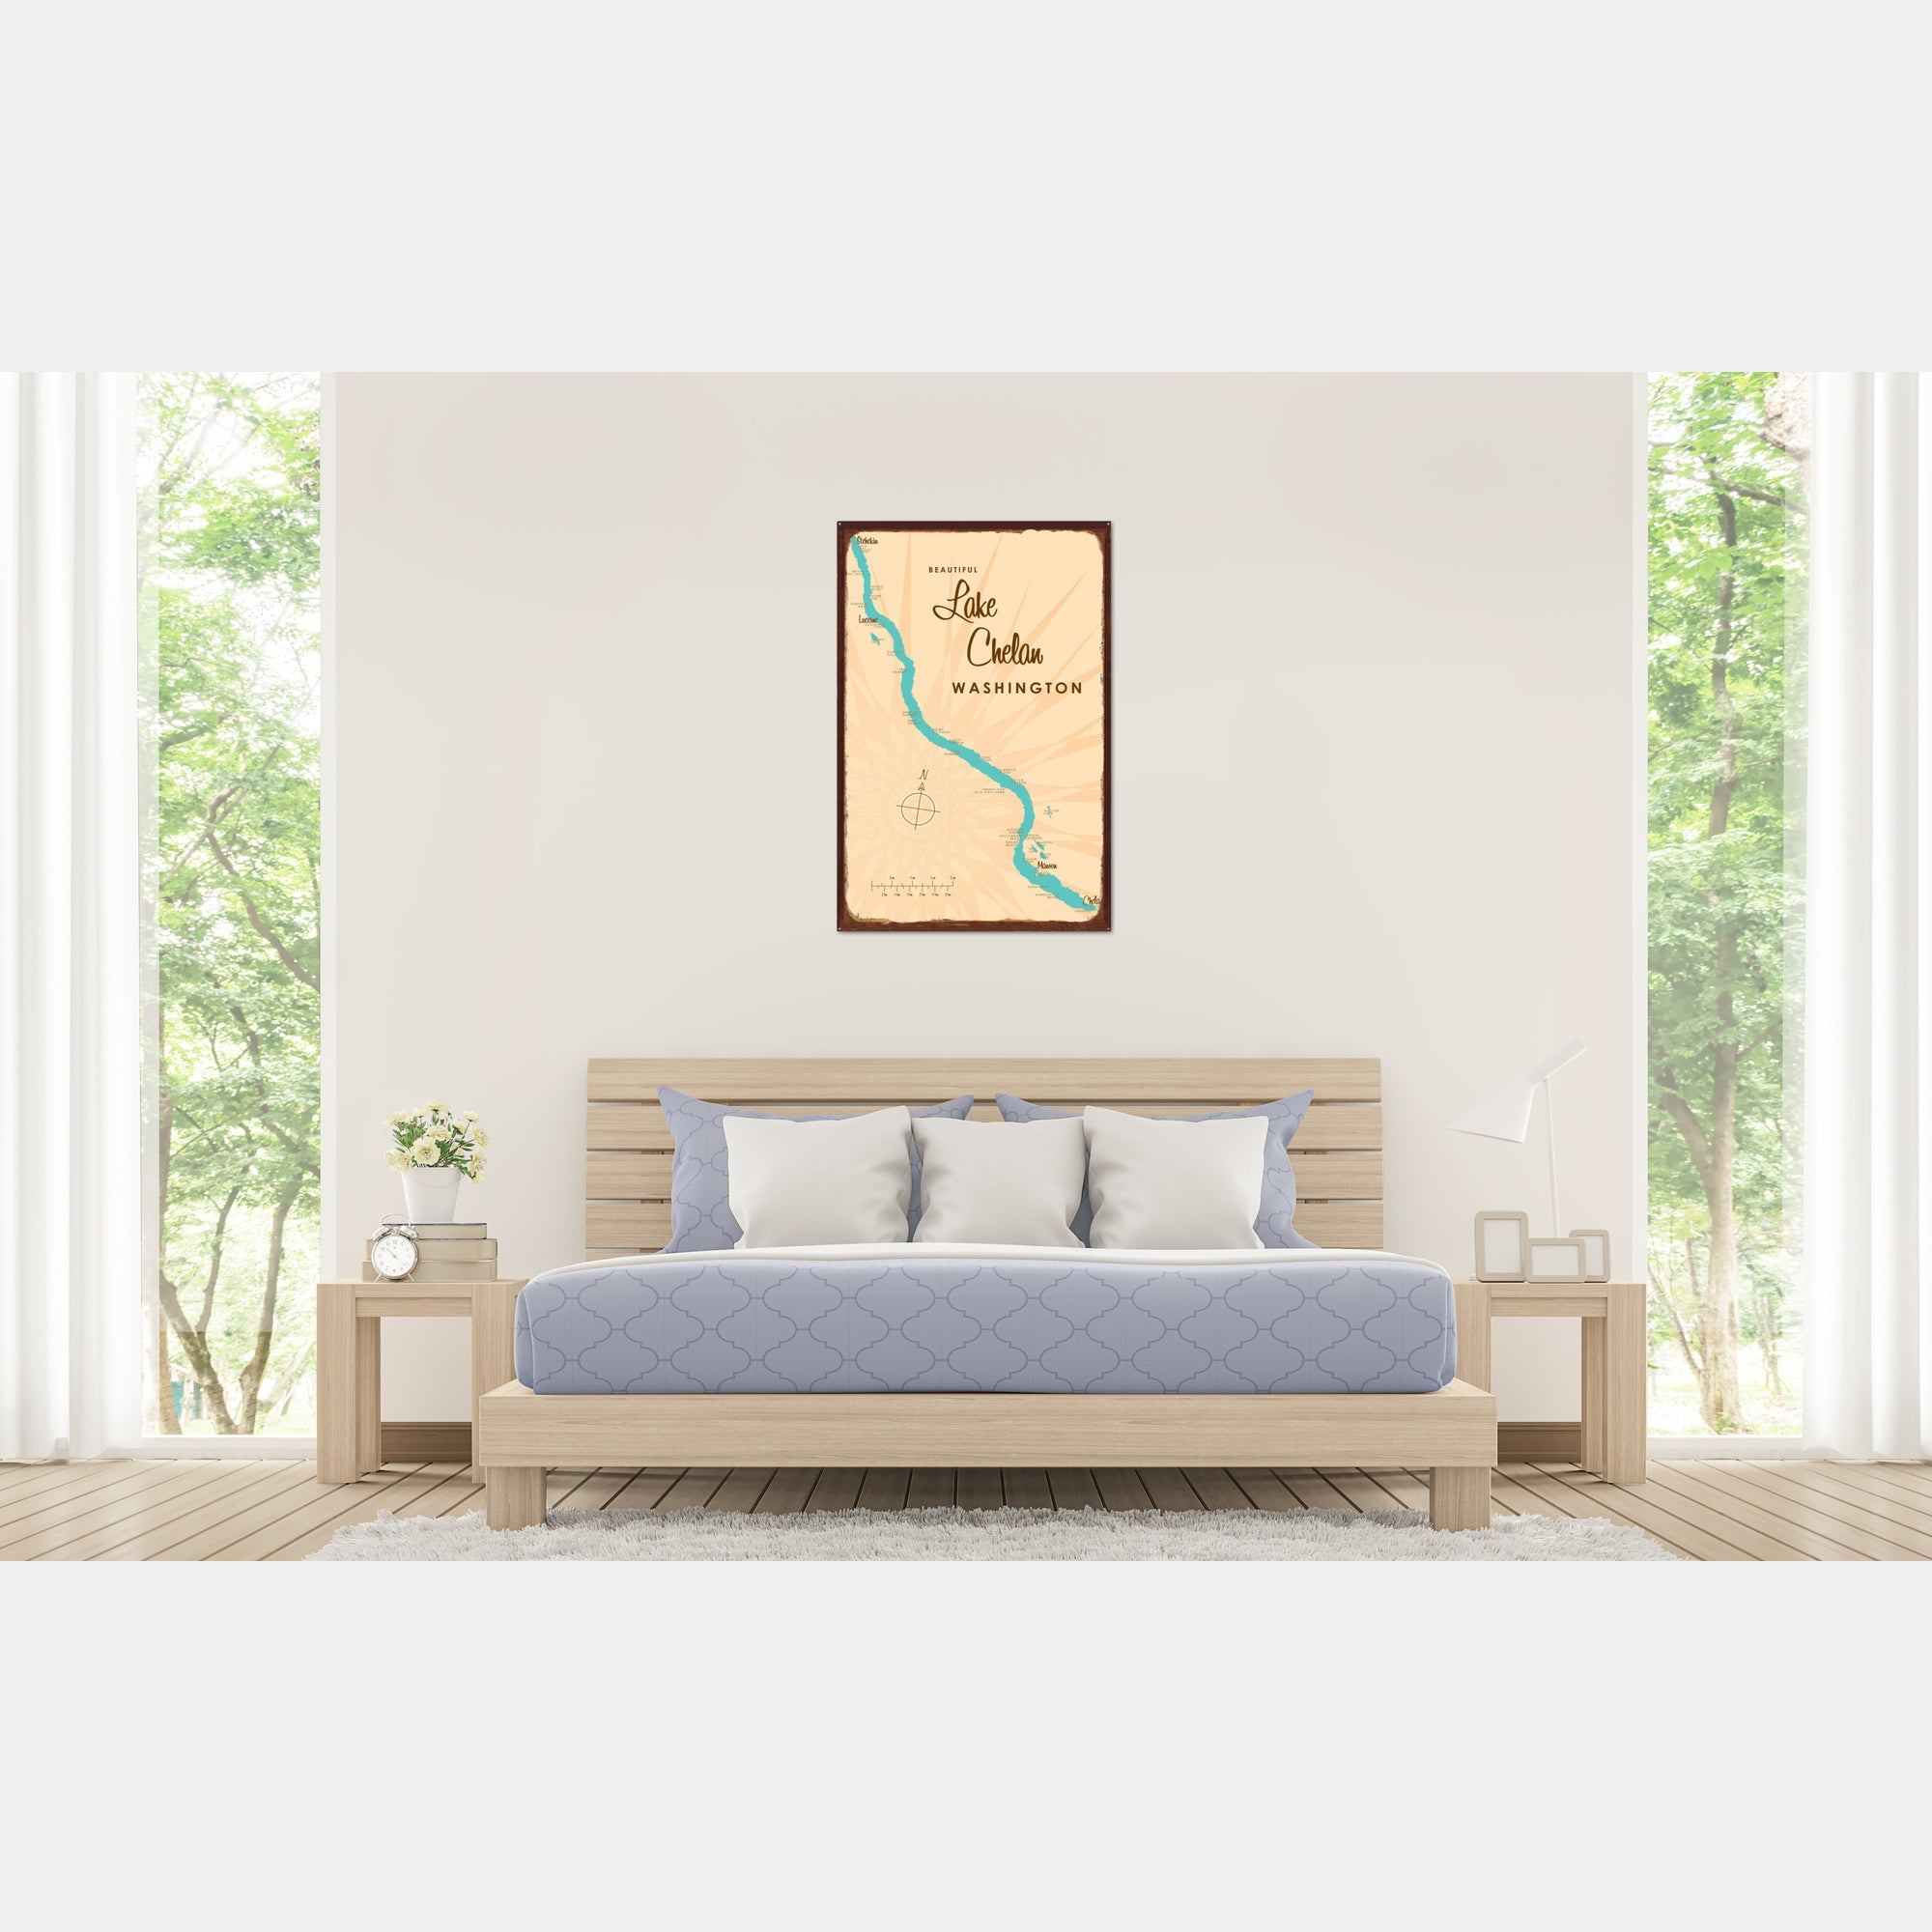 Lake Chelan Washington, Rustic Metal Sign Map Art